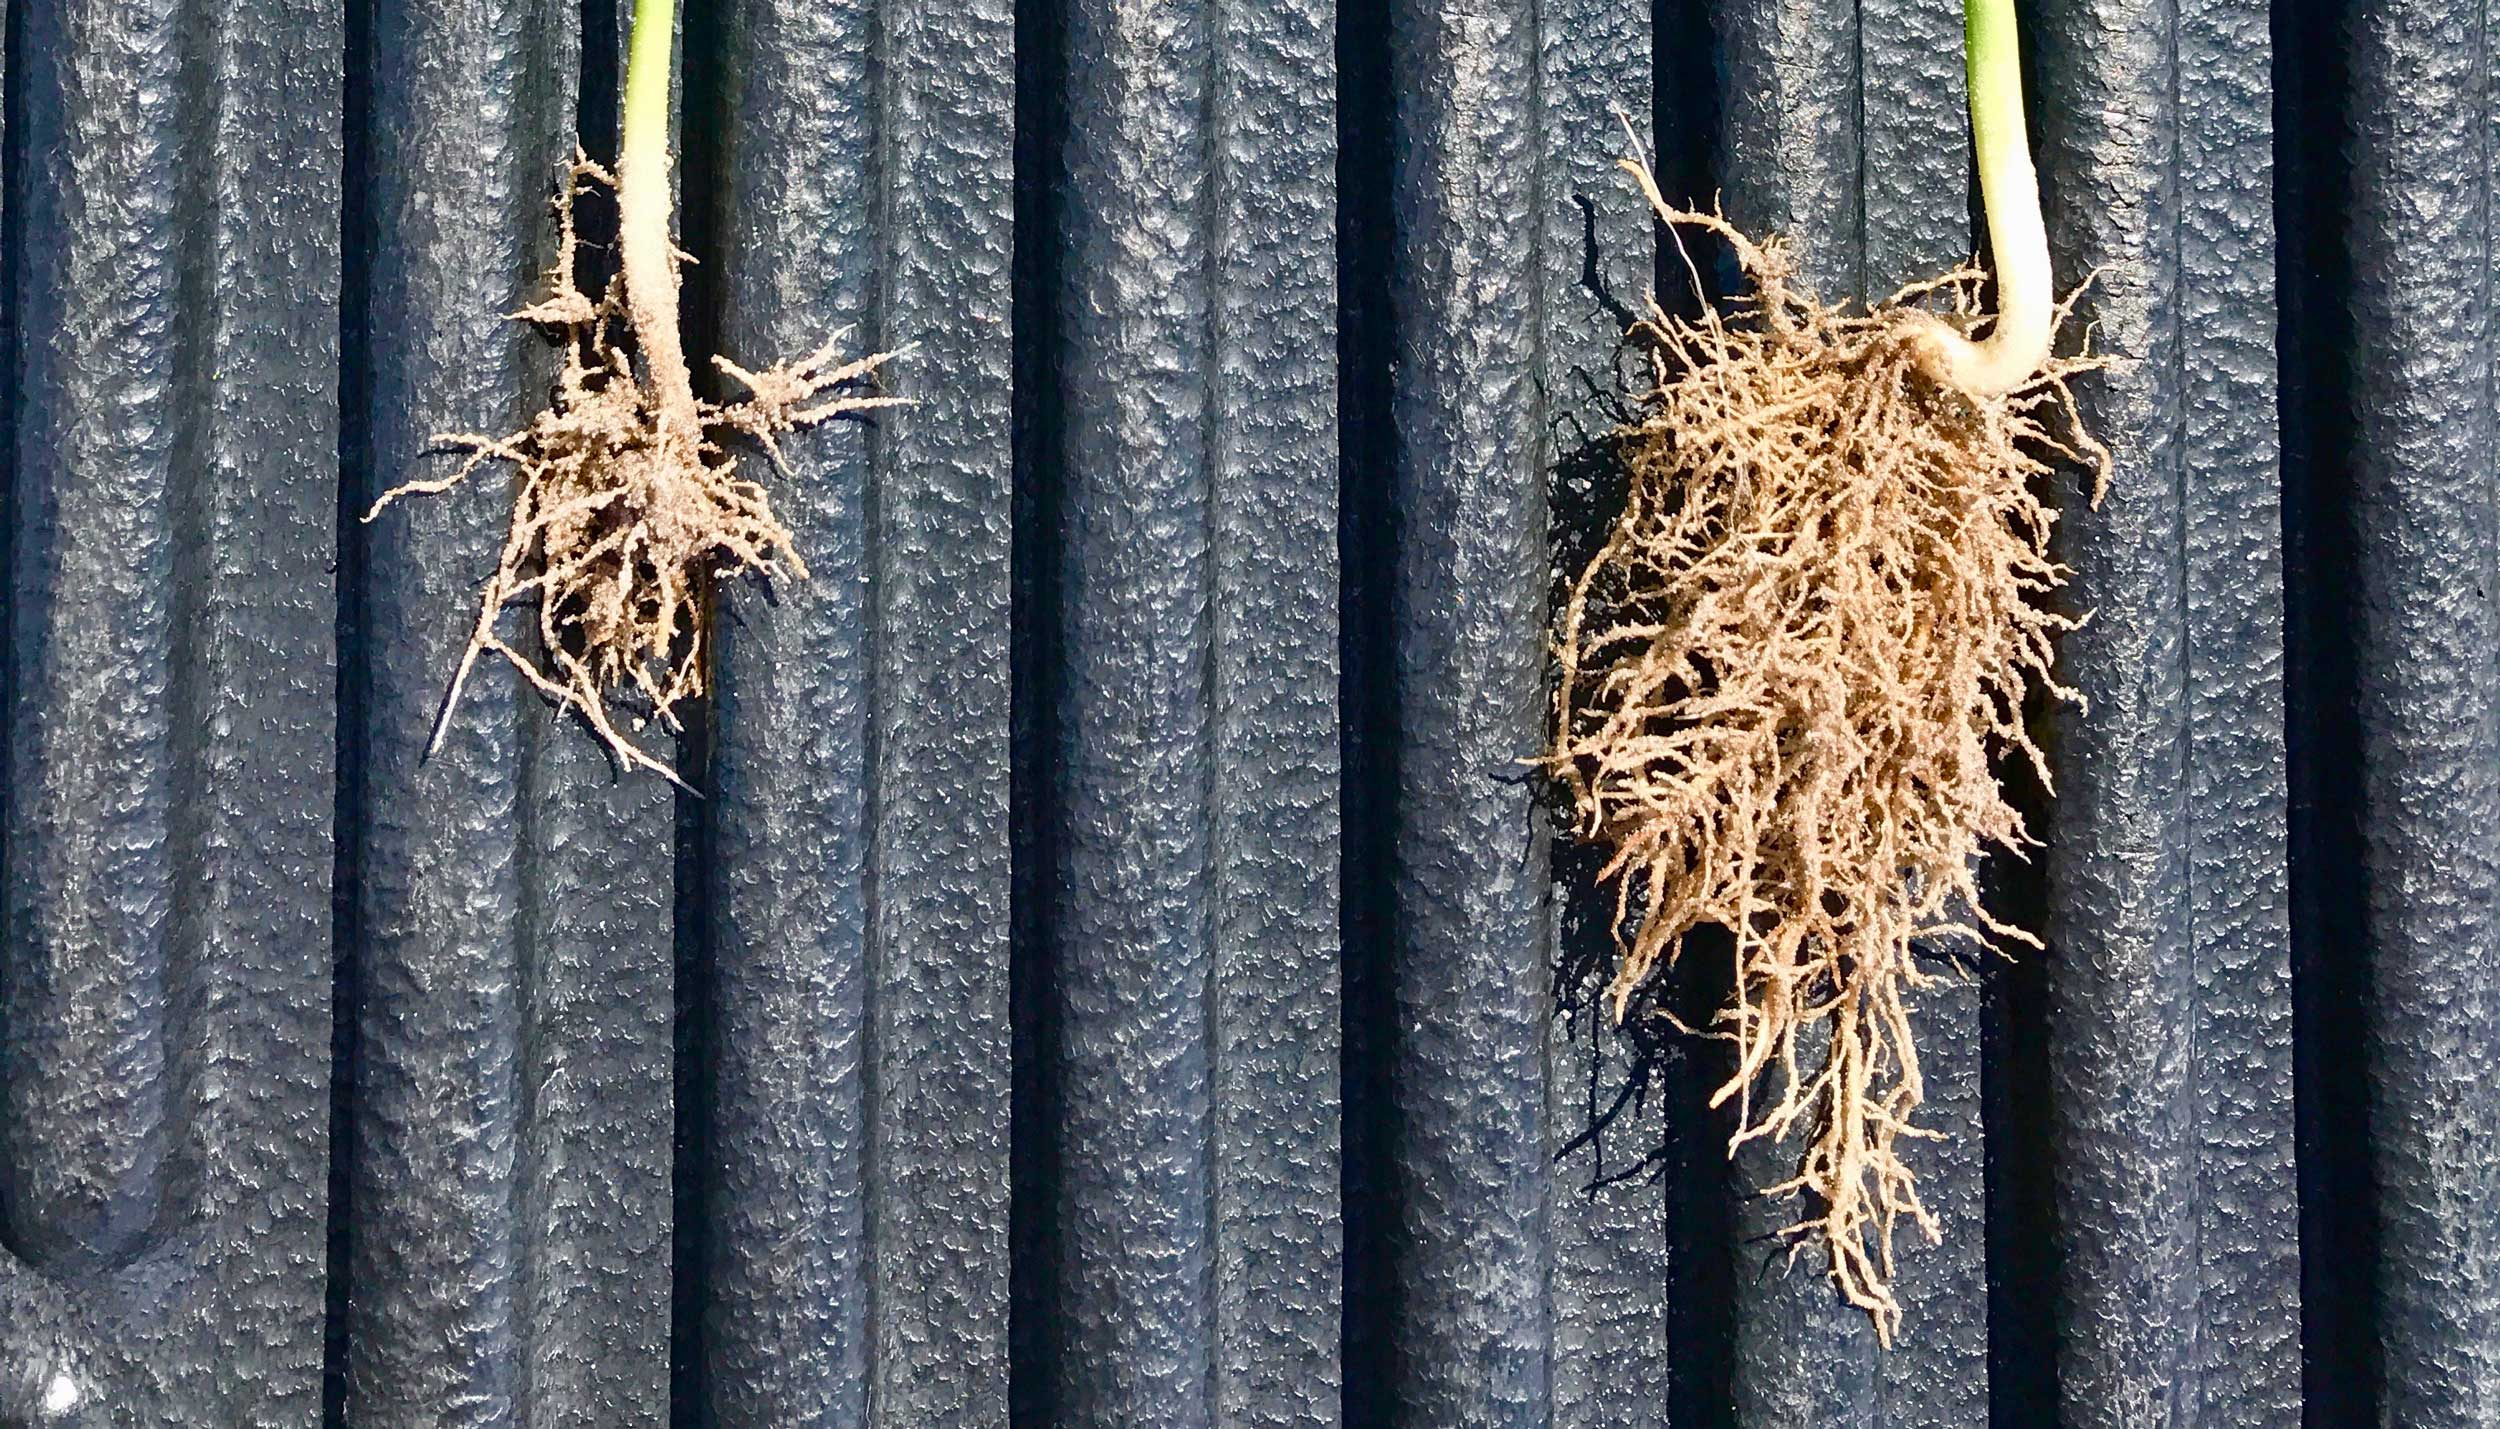 legume root growth comparison with CarbonWorks Restore